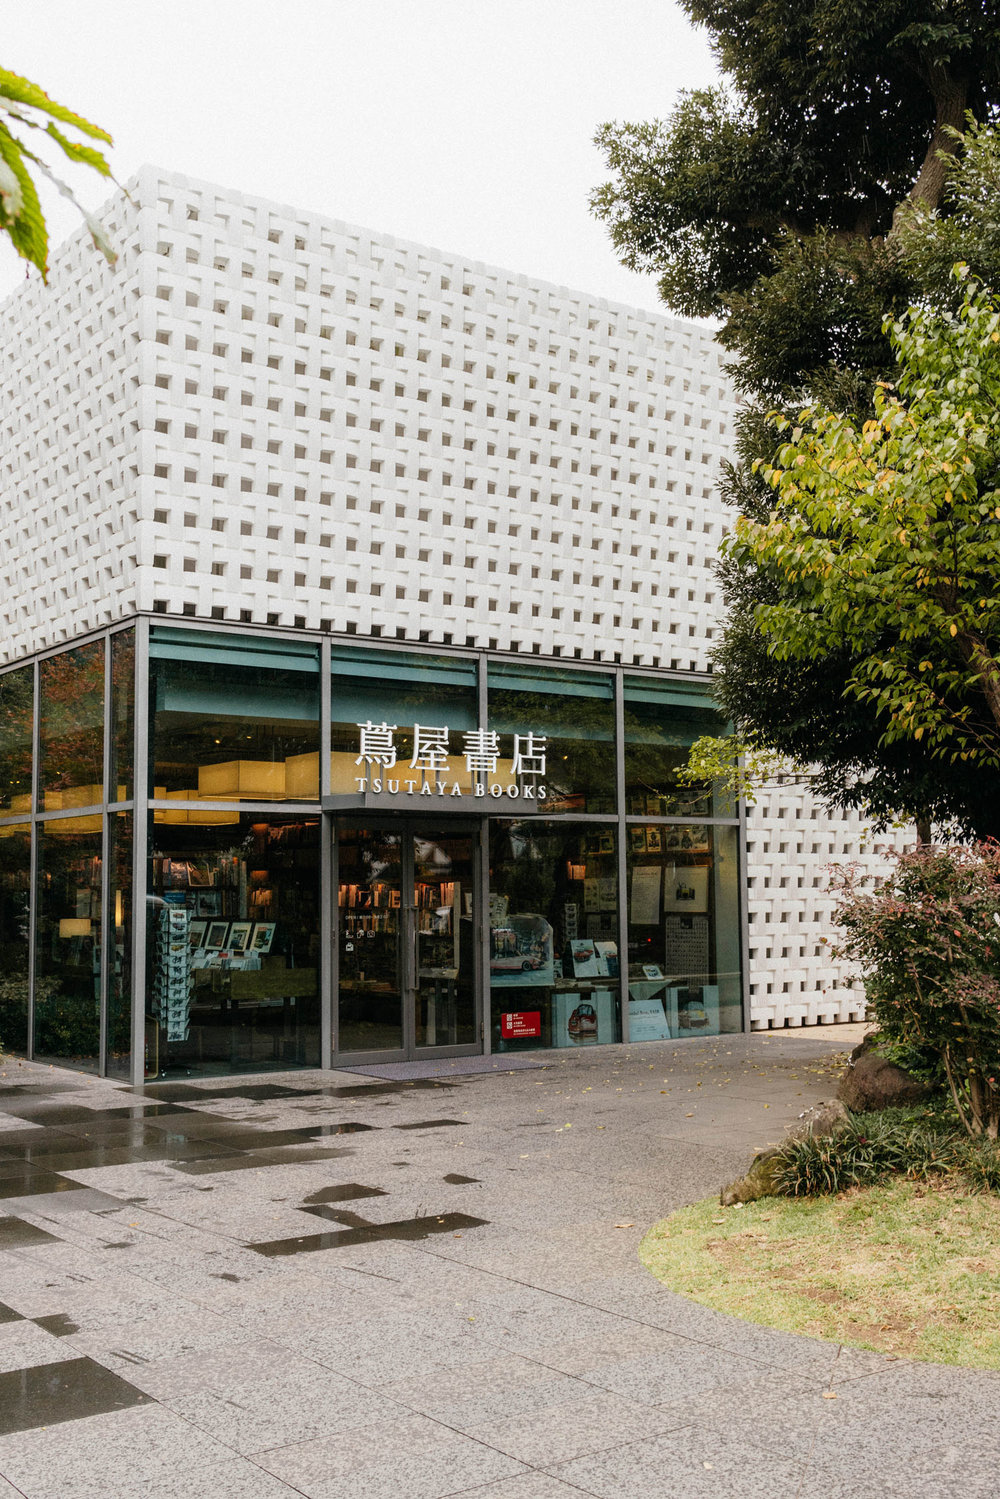 Tsutaya Books Daikanyama  – flagship bookstore consisting of 3 buildings